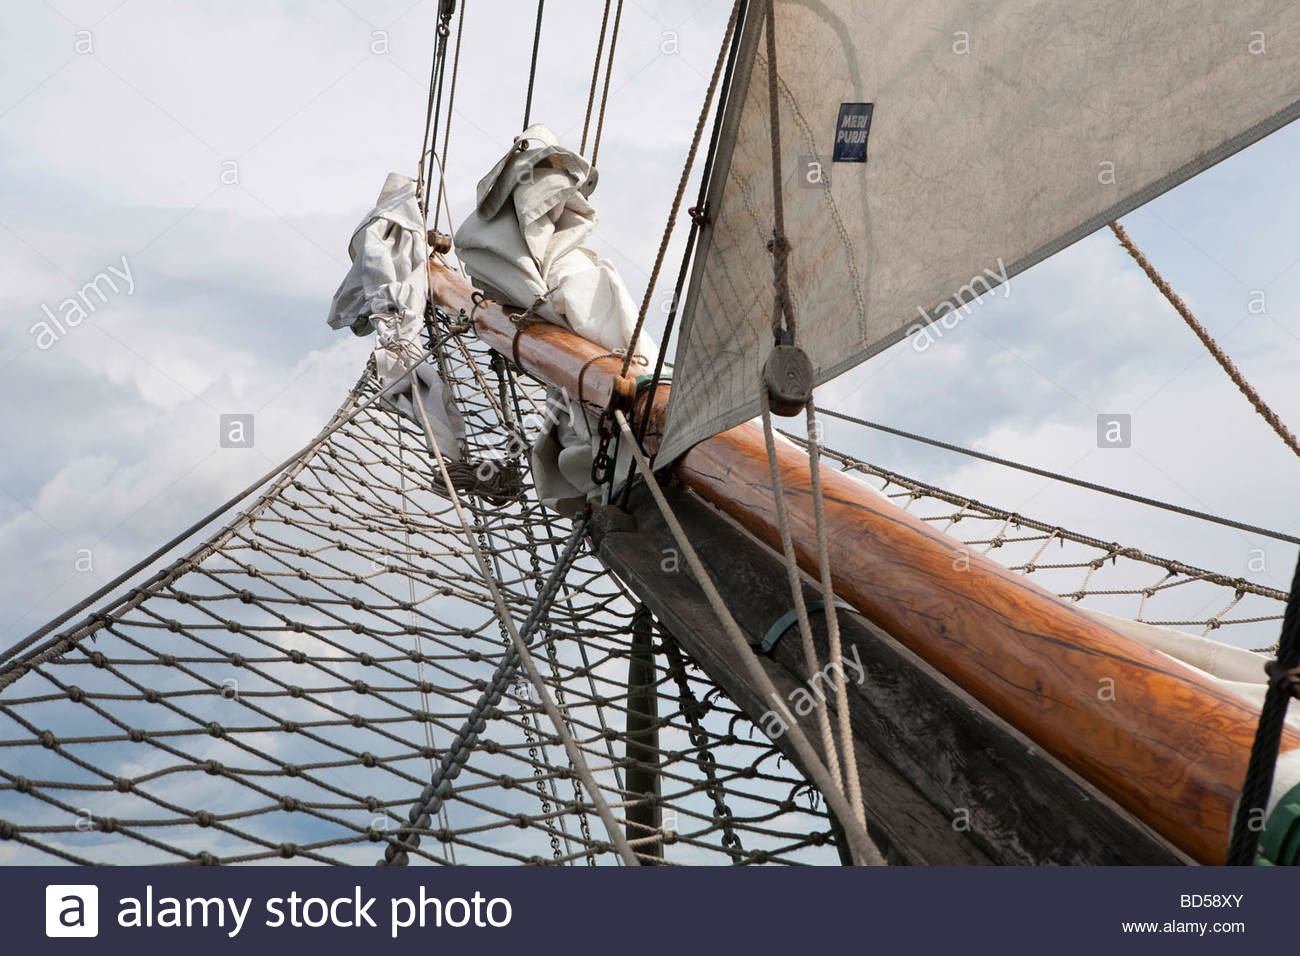 The bow of a sail ship Stock Photo